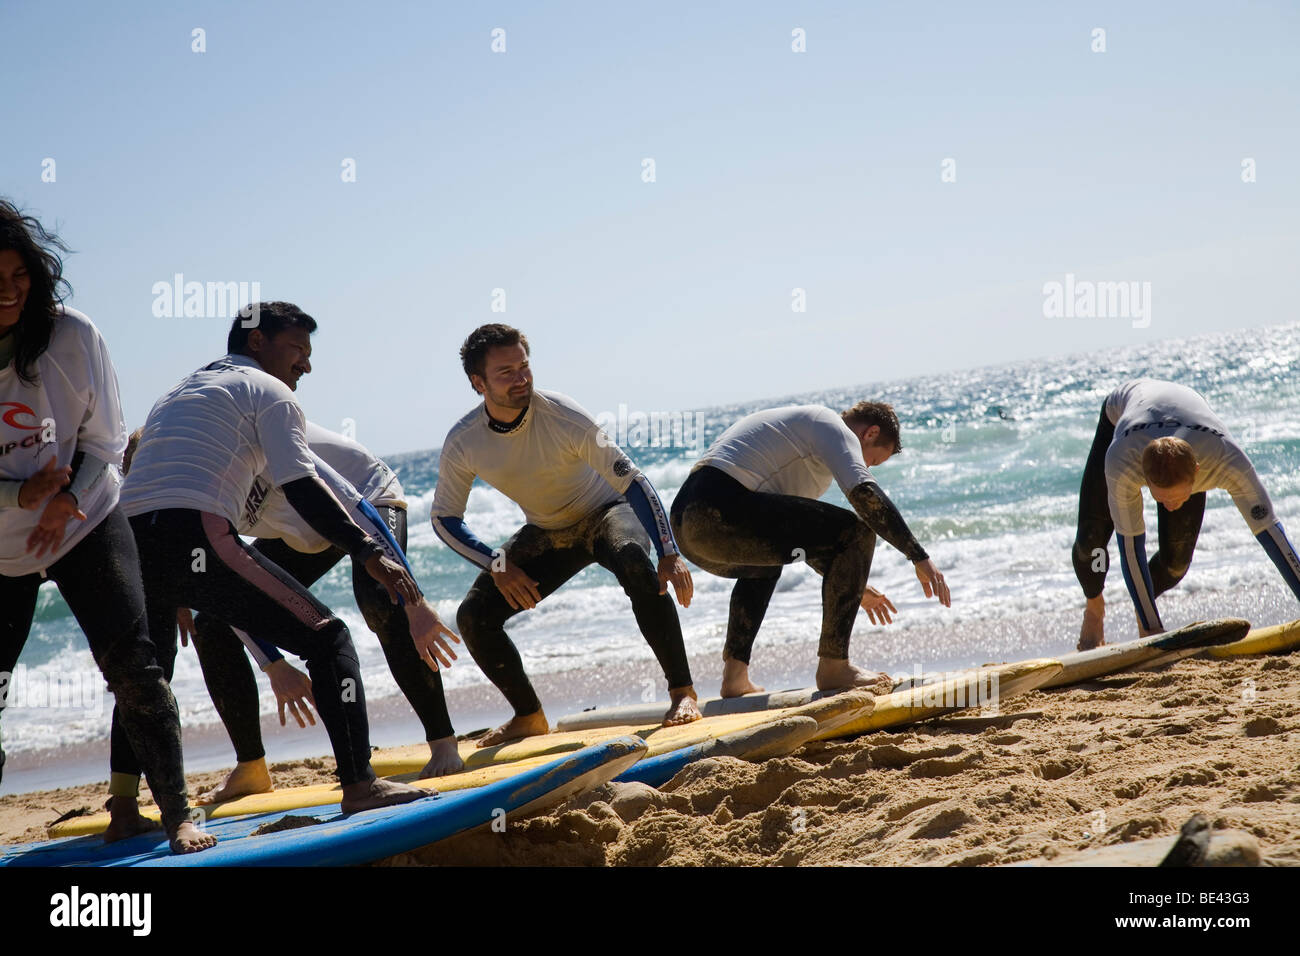 Learning to surf at Surfschool on the sands of Manly Beach. Sydney, New South Wales, AUSTRALIA - Stock Image